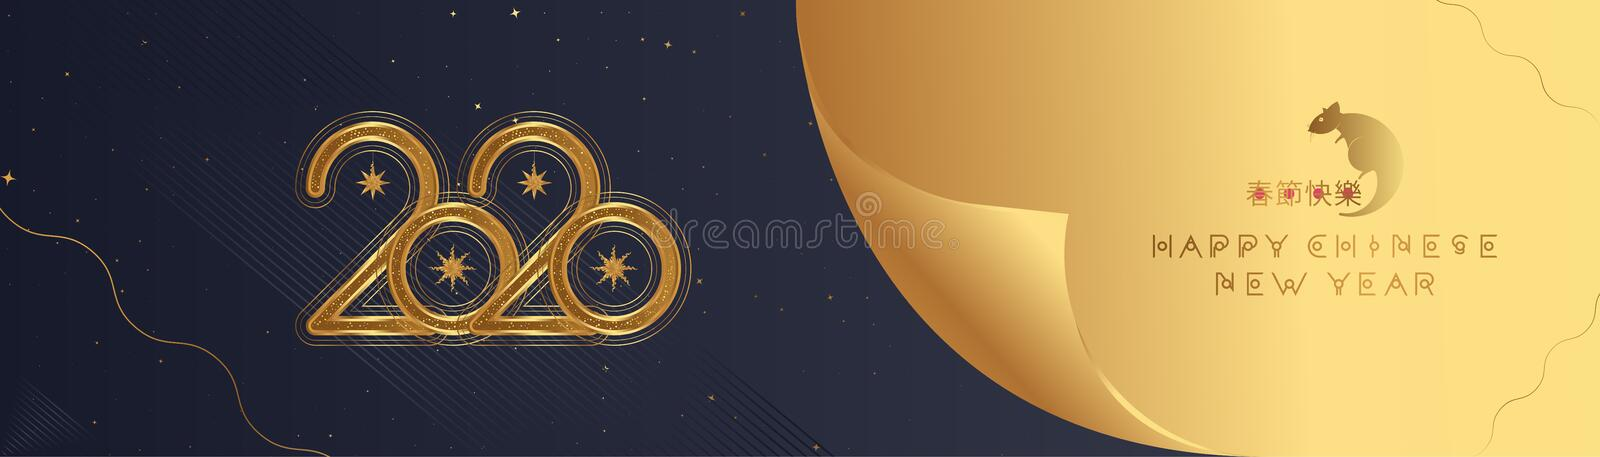 2020 Chinese new year of the Rat. Elegant gold text with light effects. Long Greeting card with golden elements on the background royalty free illustration